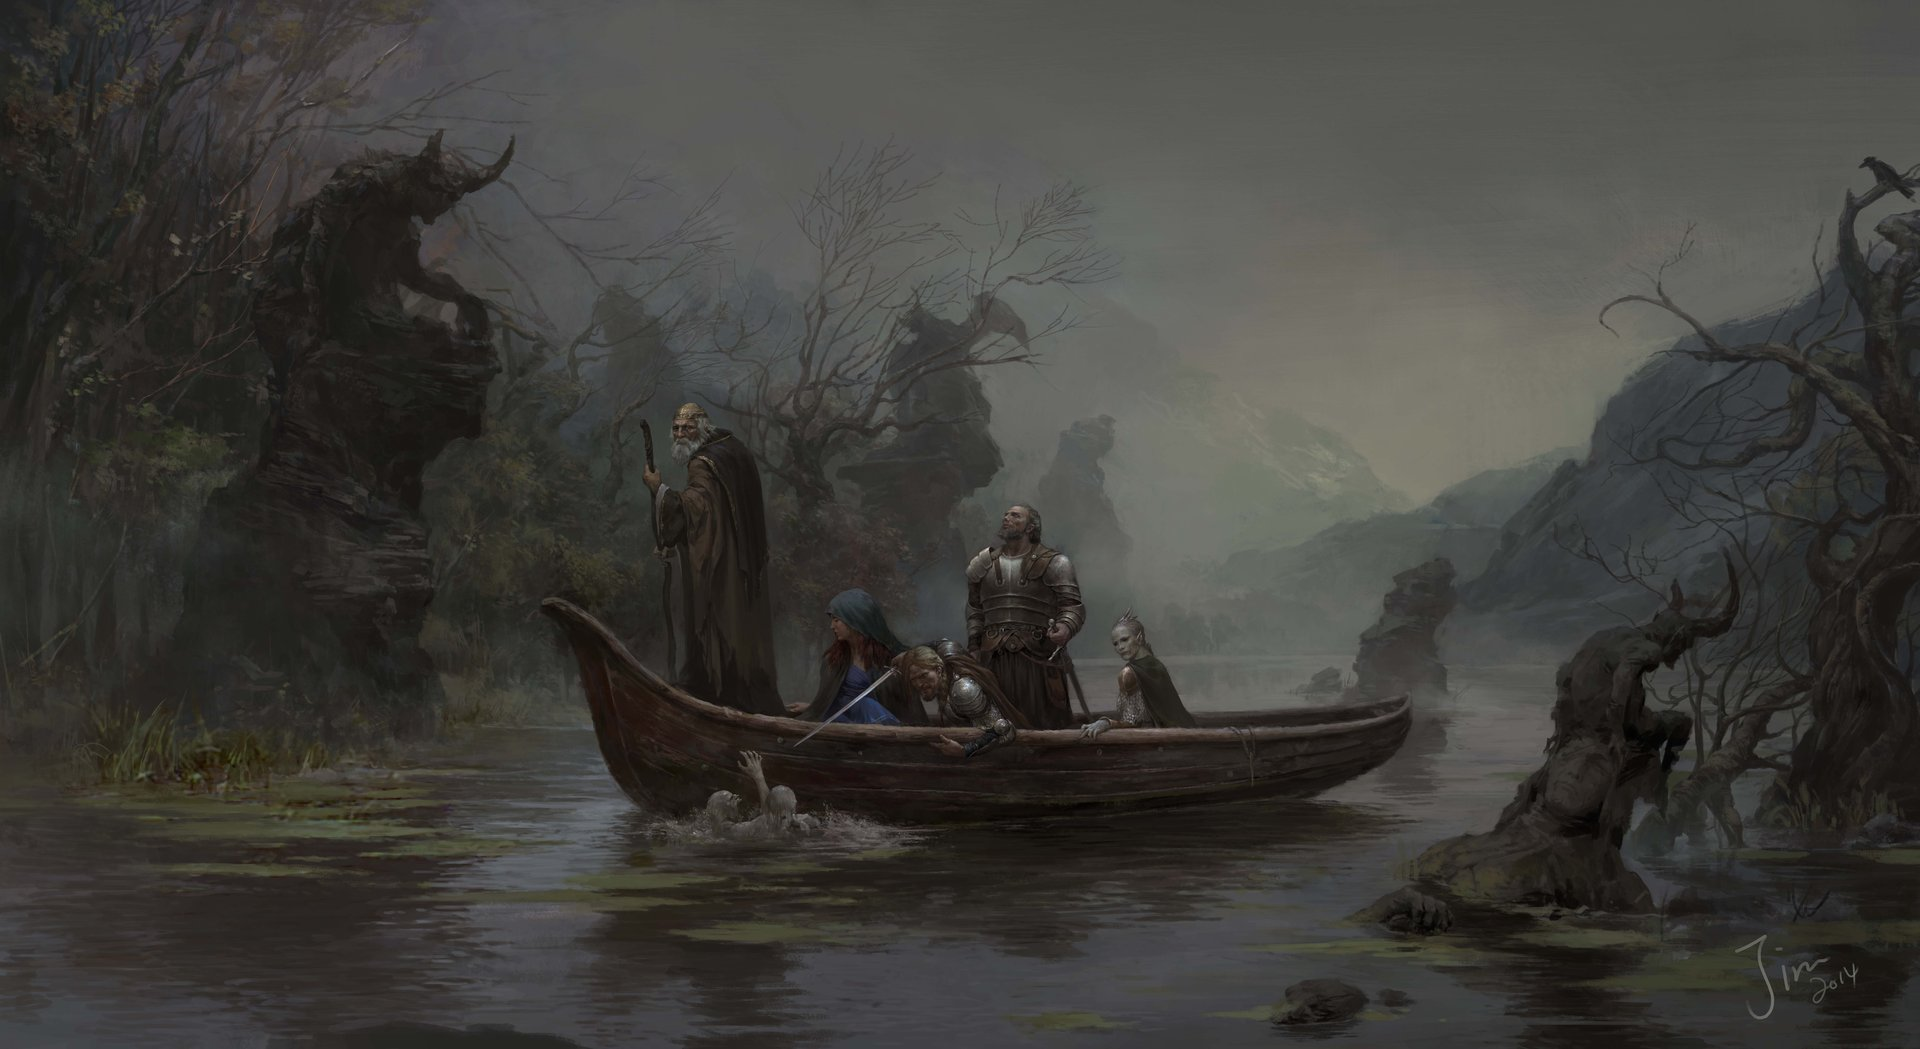 Xiaodi Jin Digital painting illustration Marsh adventure